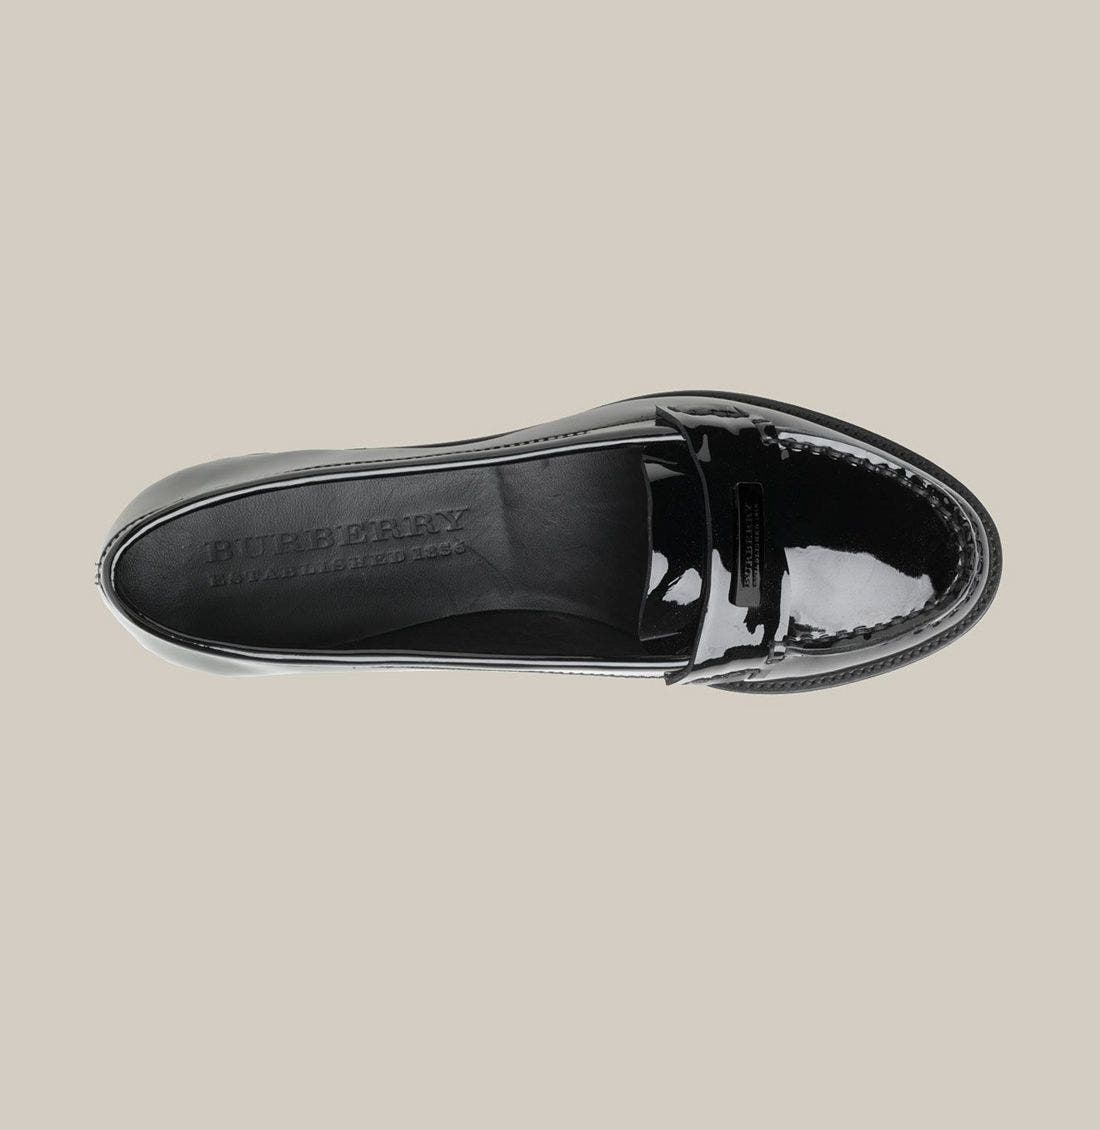 BURBERRY,                             Patent Leather Loafer,                             Alternate thumbnail 3, color,                             001